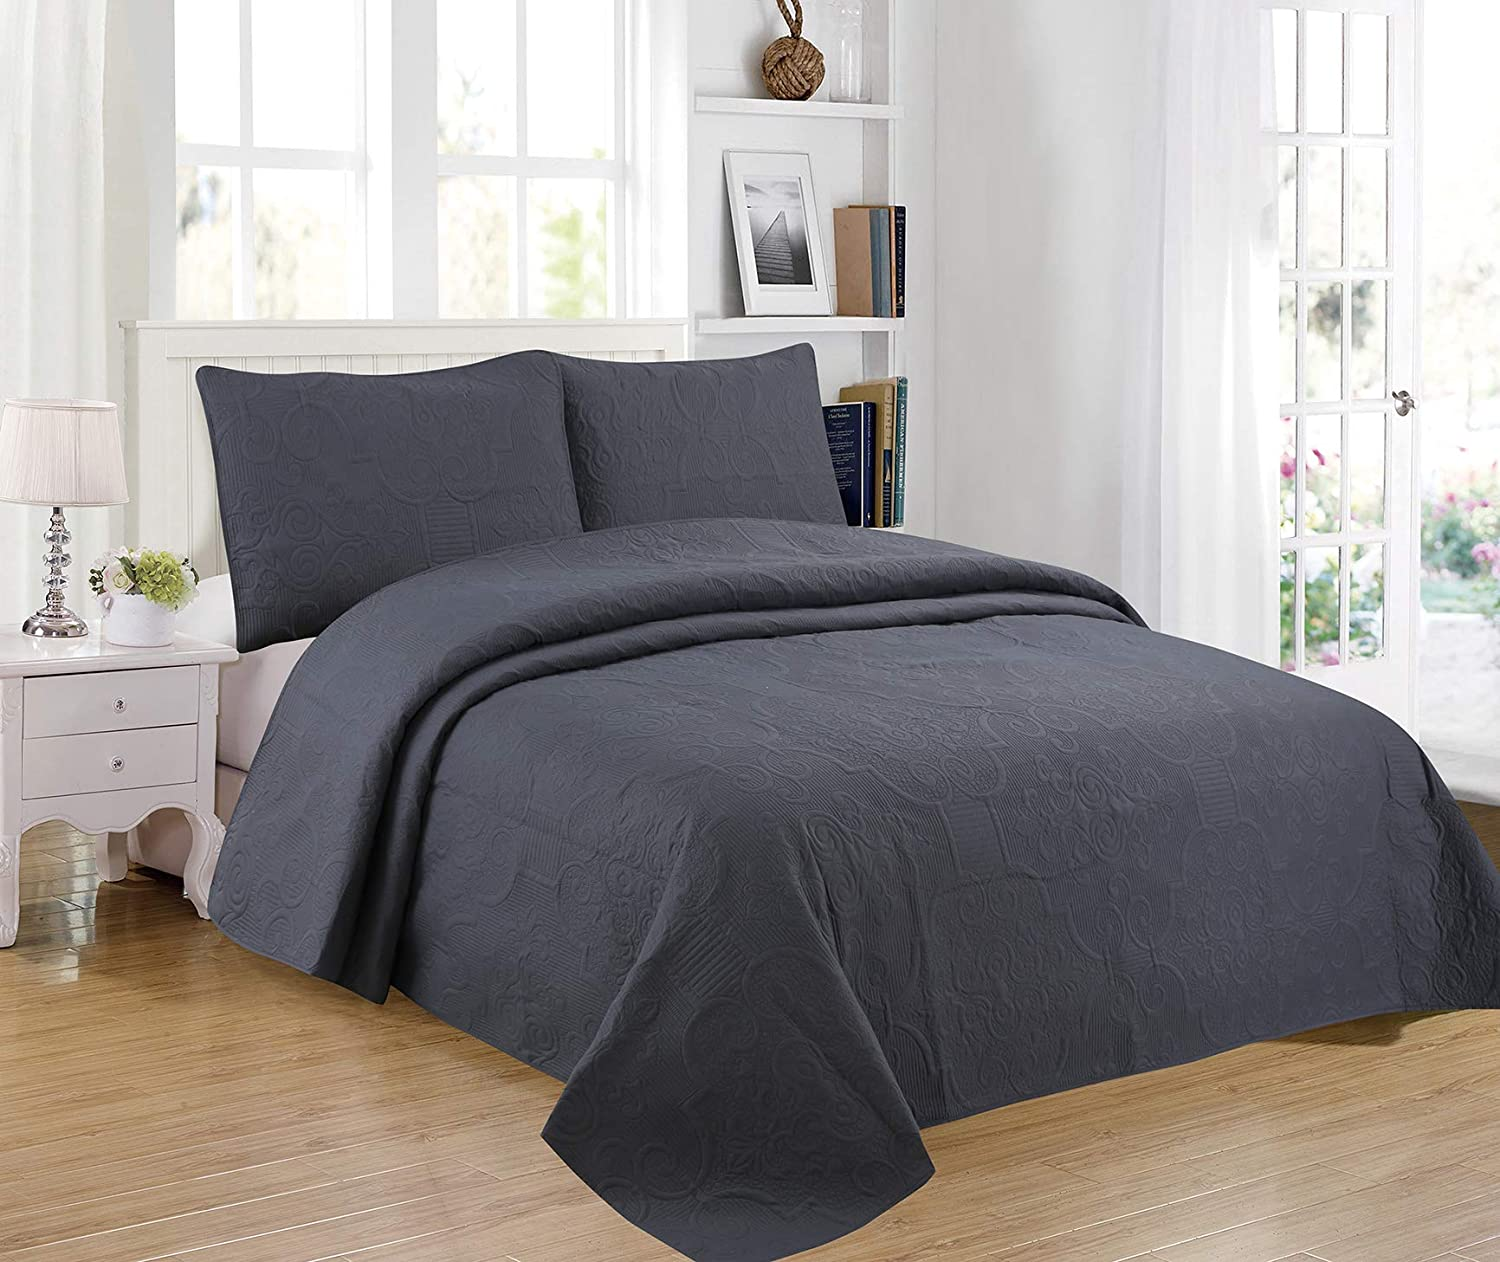 Sapphire Home 3-Piece Full/Queen Oversize Bedspread Coverlet Bedding Set w/2 Shams, Soft Touch, Solid, Stylish Embossed Pattern, All-Season Oversize Comforter Bed Cover, Emma Queen Gray Charcoal